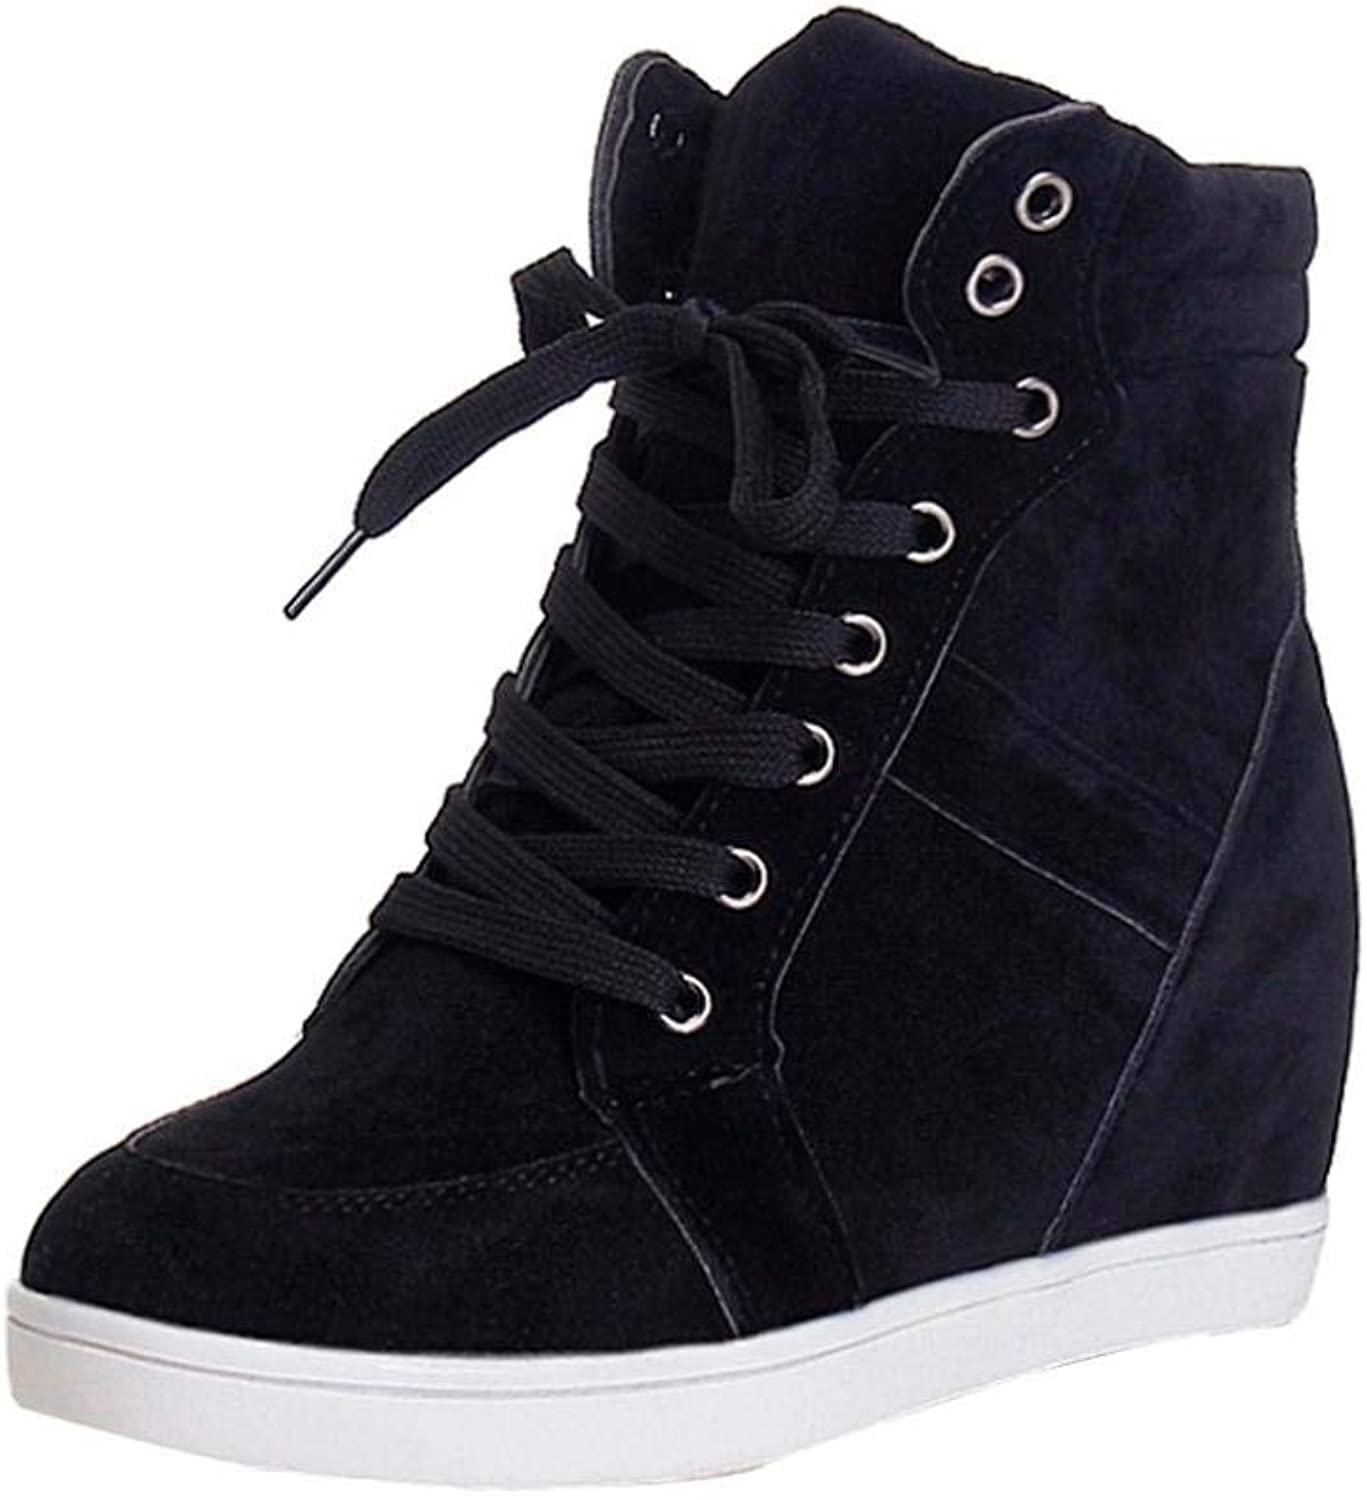 JaHGDU Fashion Women Round Toe Lace-up Leather Boots Casual Party shoes Leisure Elegant Soft Wild Tight Super Quality Black Red for Womens